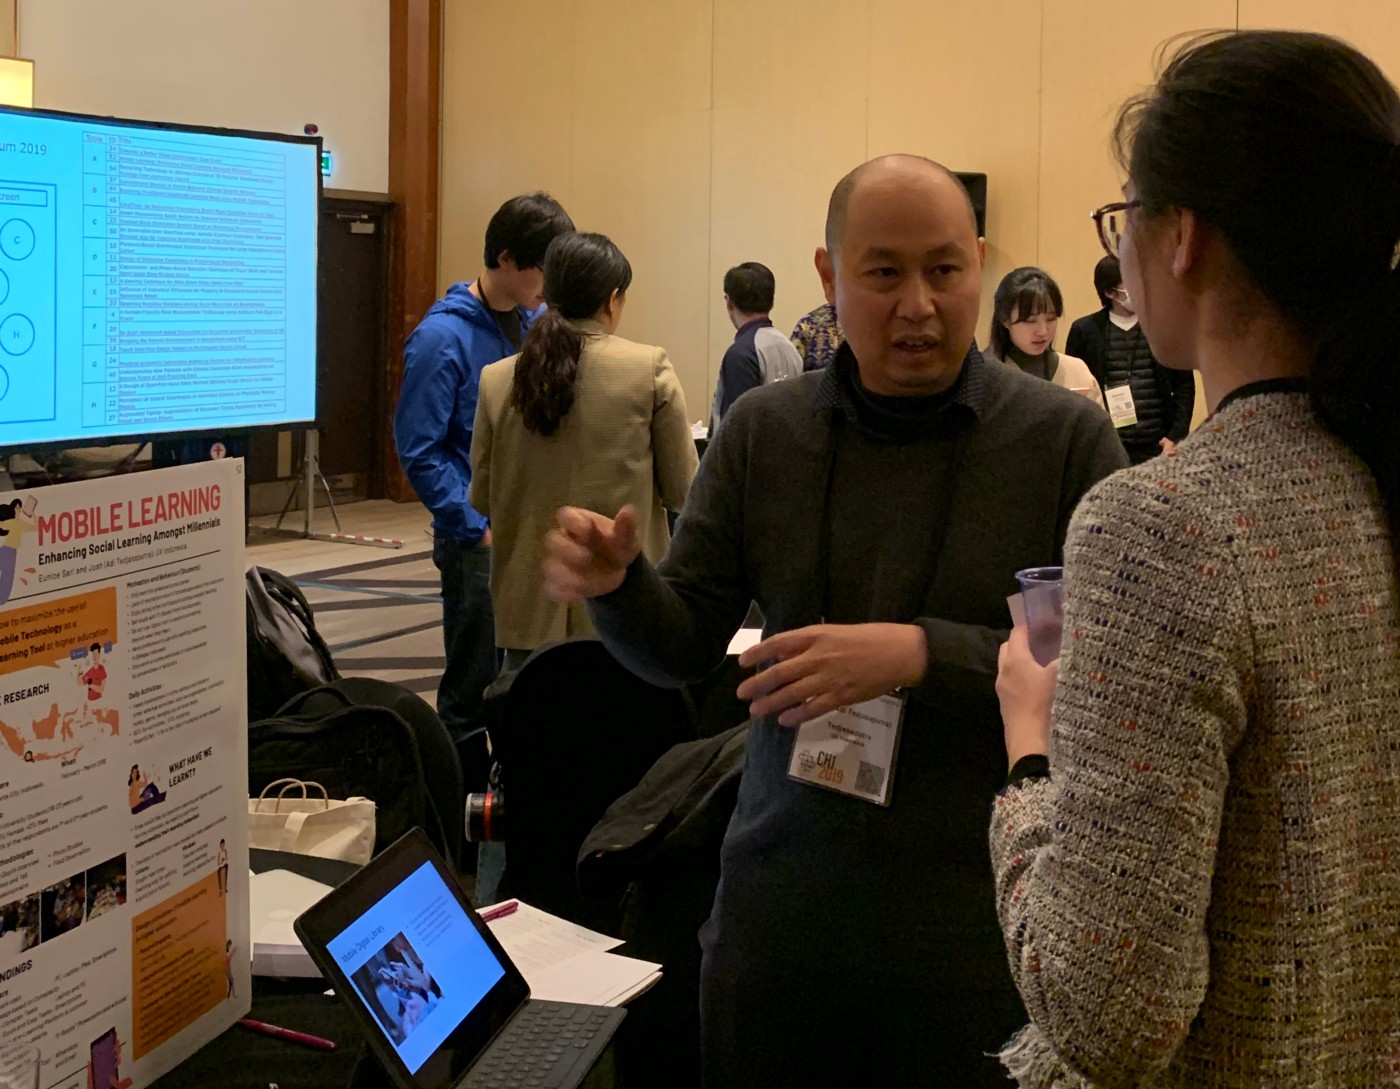 The latest face-to-face Asian CHI Symposium before the COVID-19 pandemic, with people discussing around posters